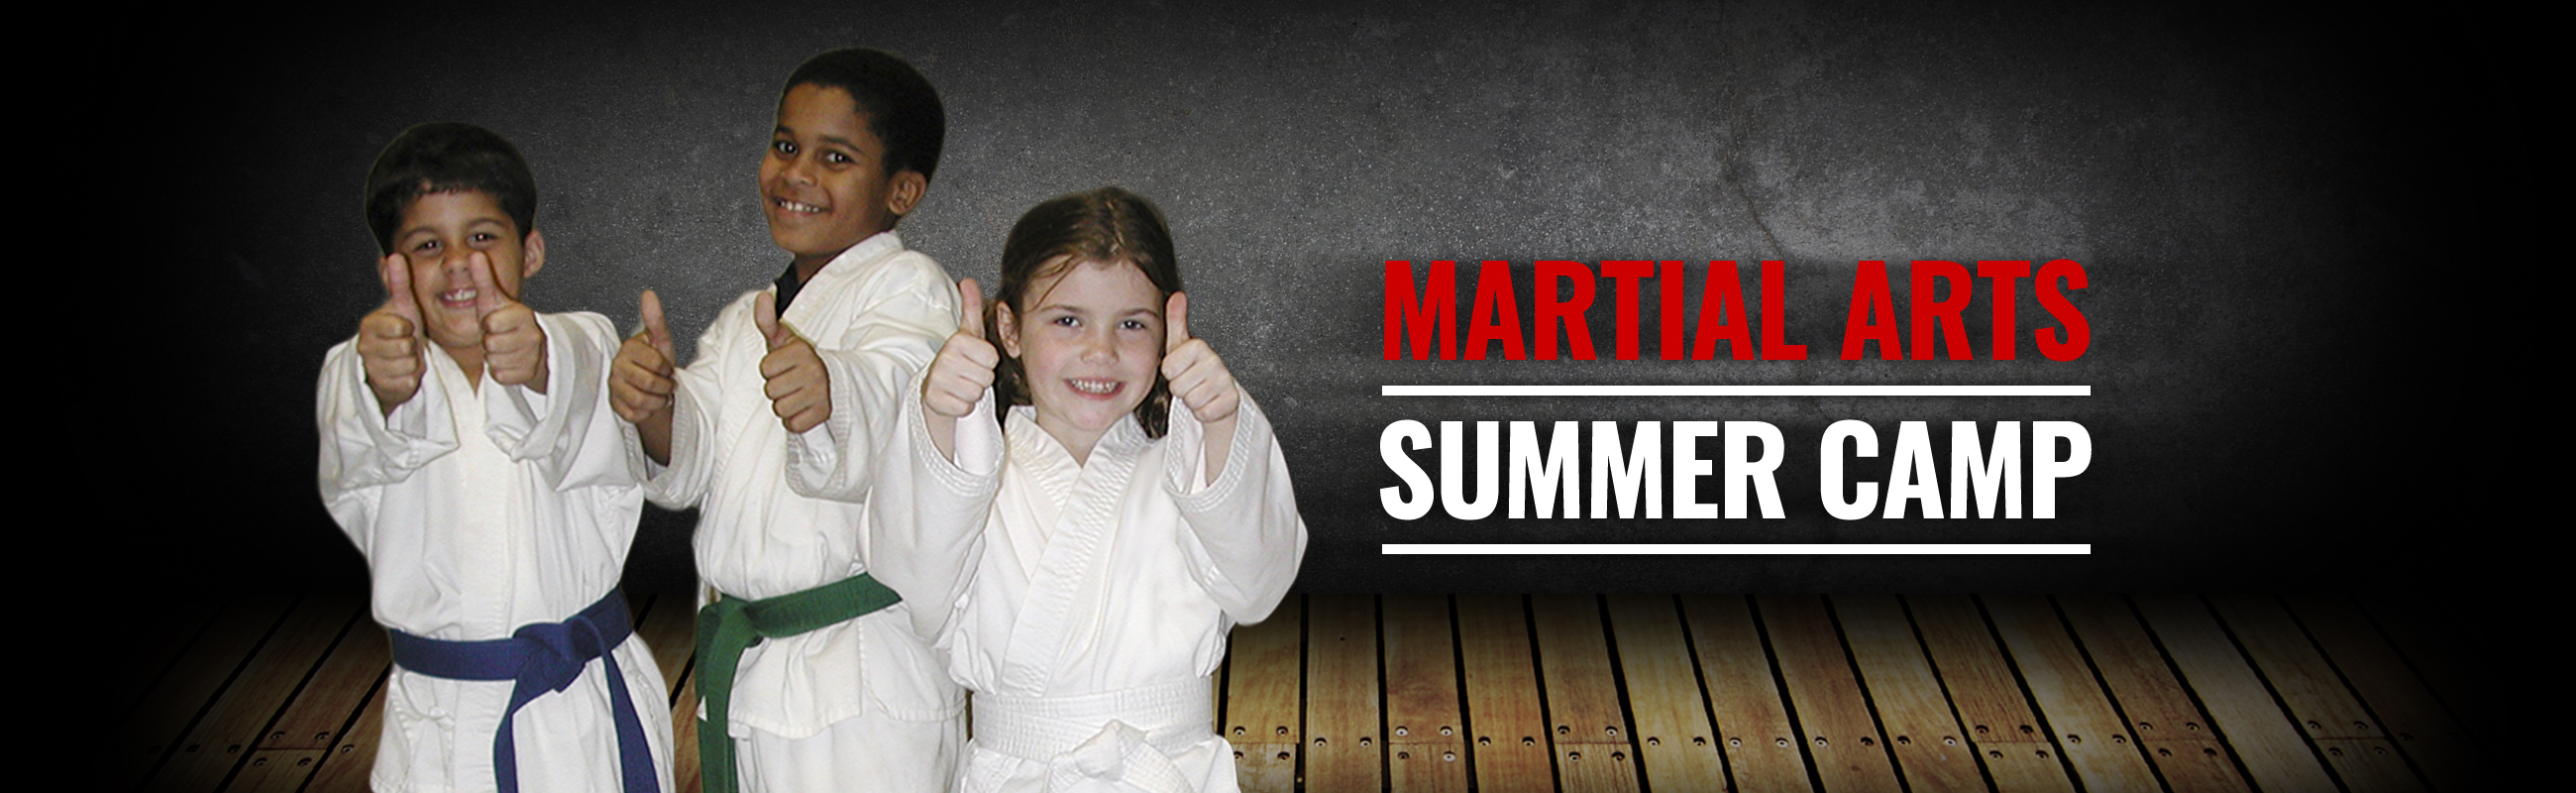 slider summer camp martial arts-3